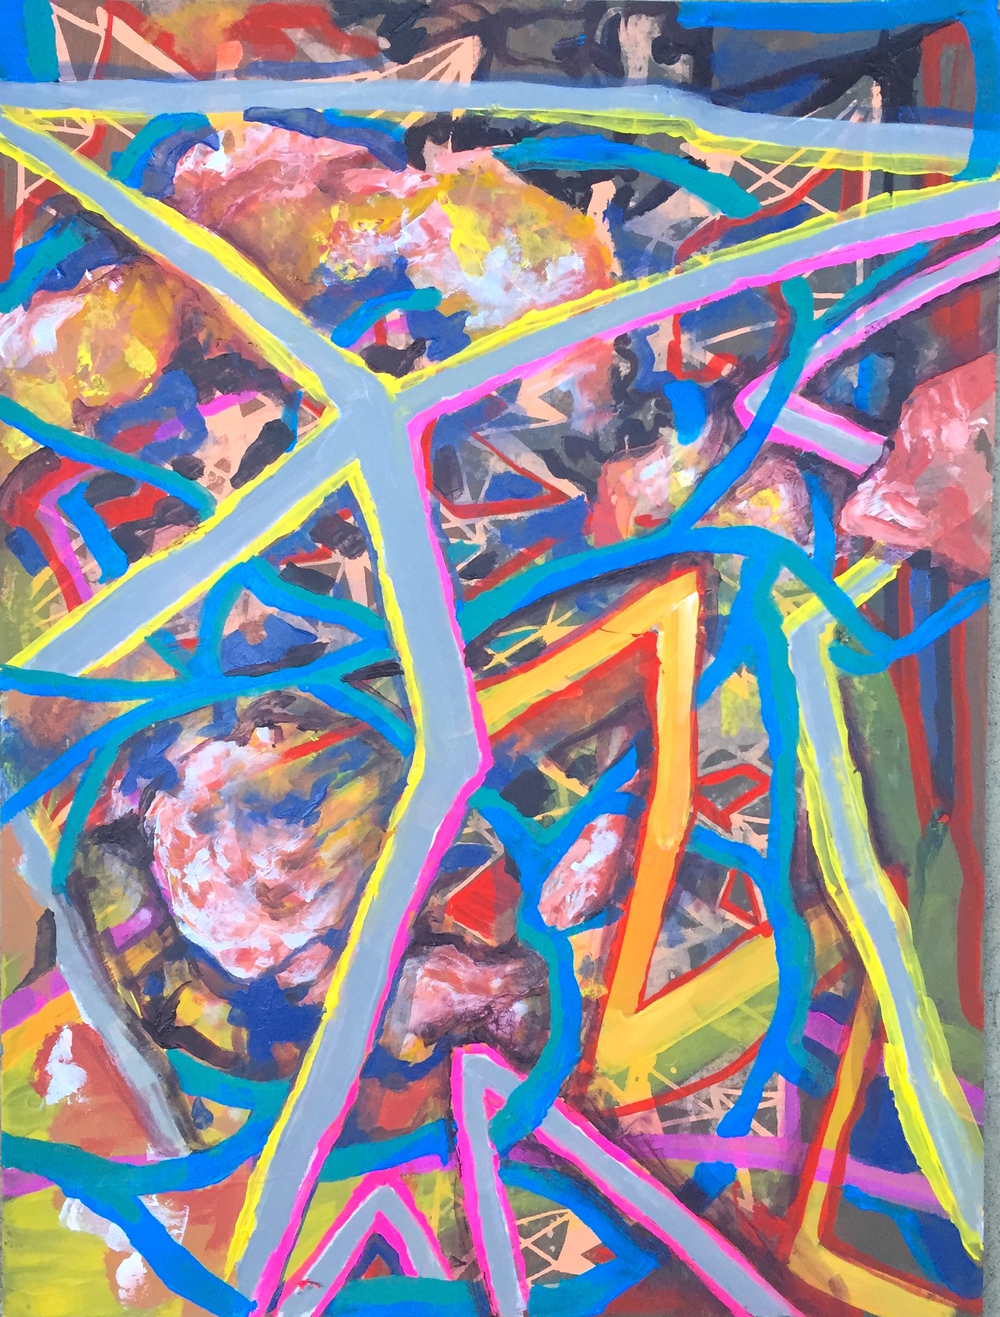 "Zipline Tangle, mixed media on paper, 24"" x 18"", 2015"